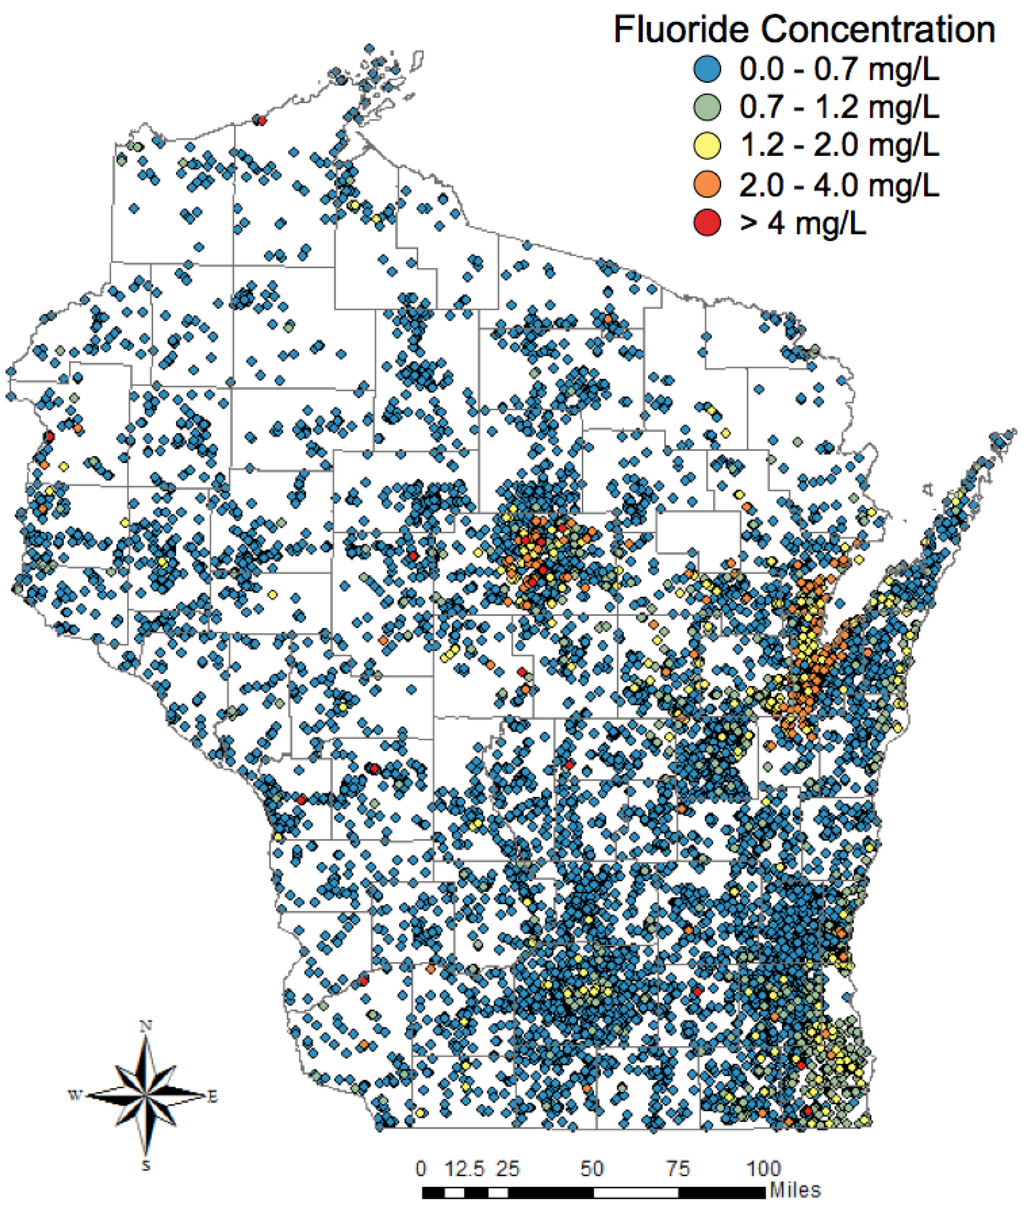 Niagara Escarpment Wisconsin Map.Resources Free Full Text Groundwater Quantity And Quality Issues